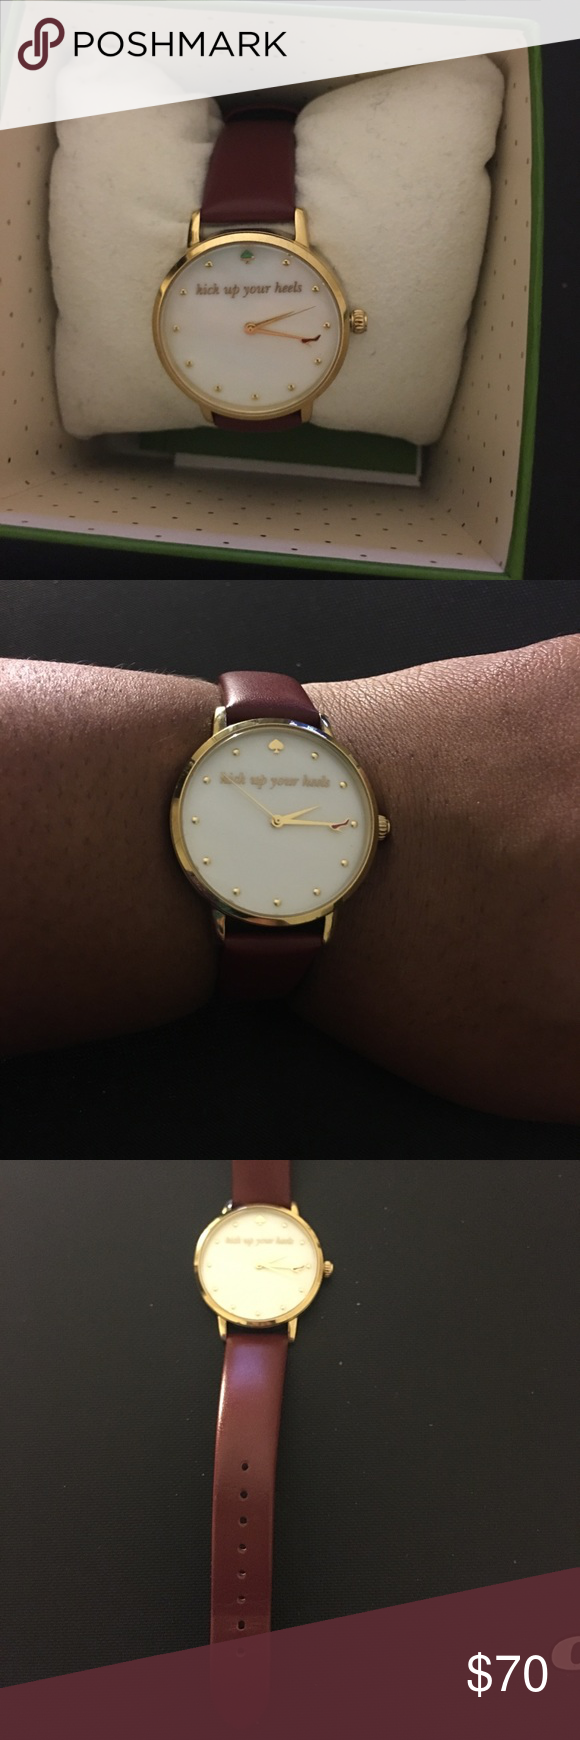 594512d0e34c Kate Spade Women s Watch Kick up your heels. 34mm wine colored kate spade  Accessories Watches